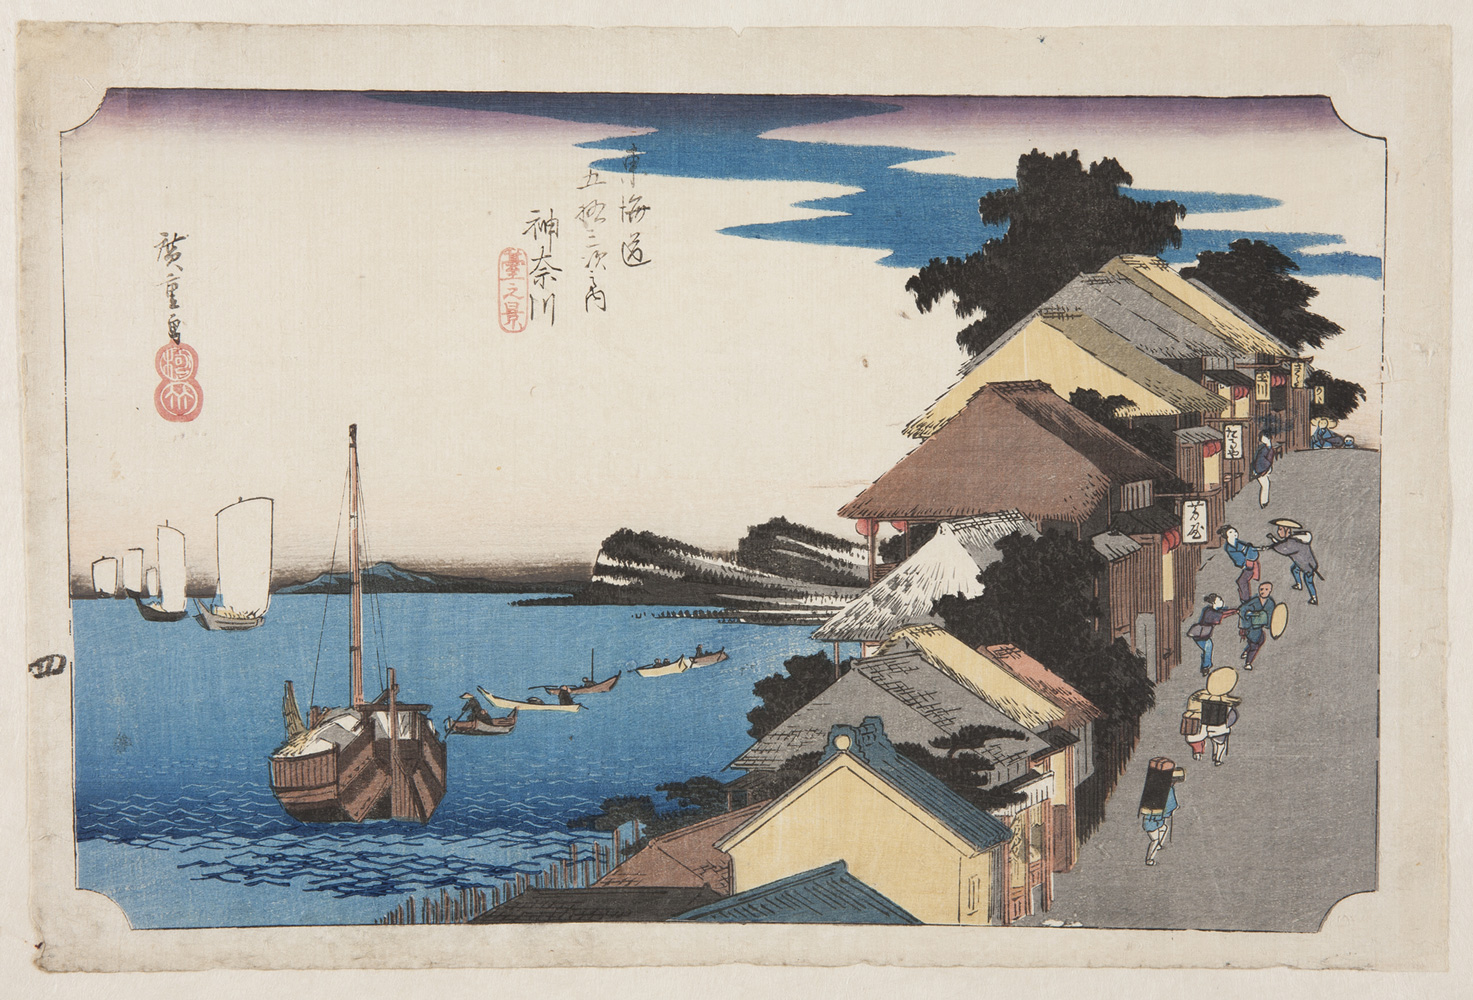 Japanese print of a seaside town. To the left are boats sailing on the water. To the right a street with buildings stretches up the hill. People dressed in traditional clothes walk along the street and women encourage the travellers to come into their inns.